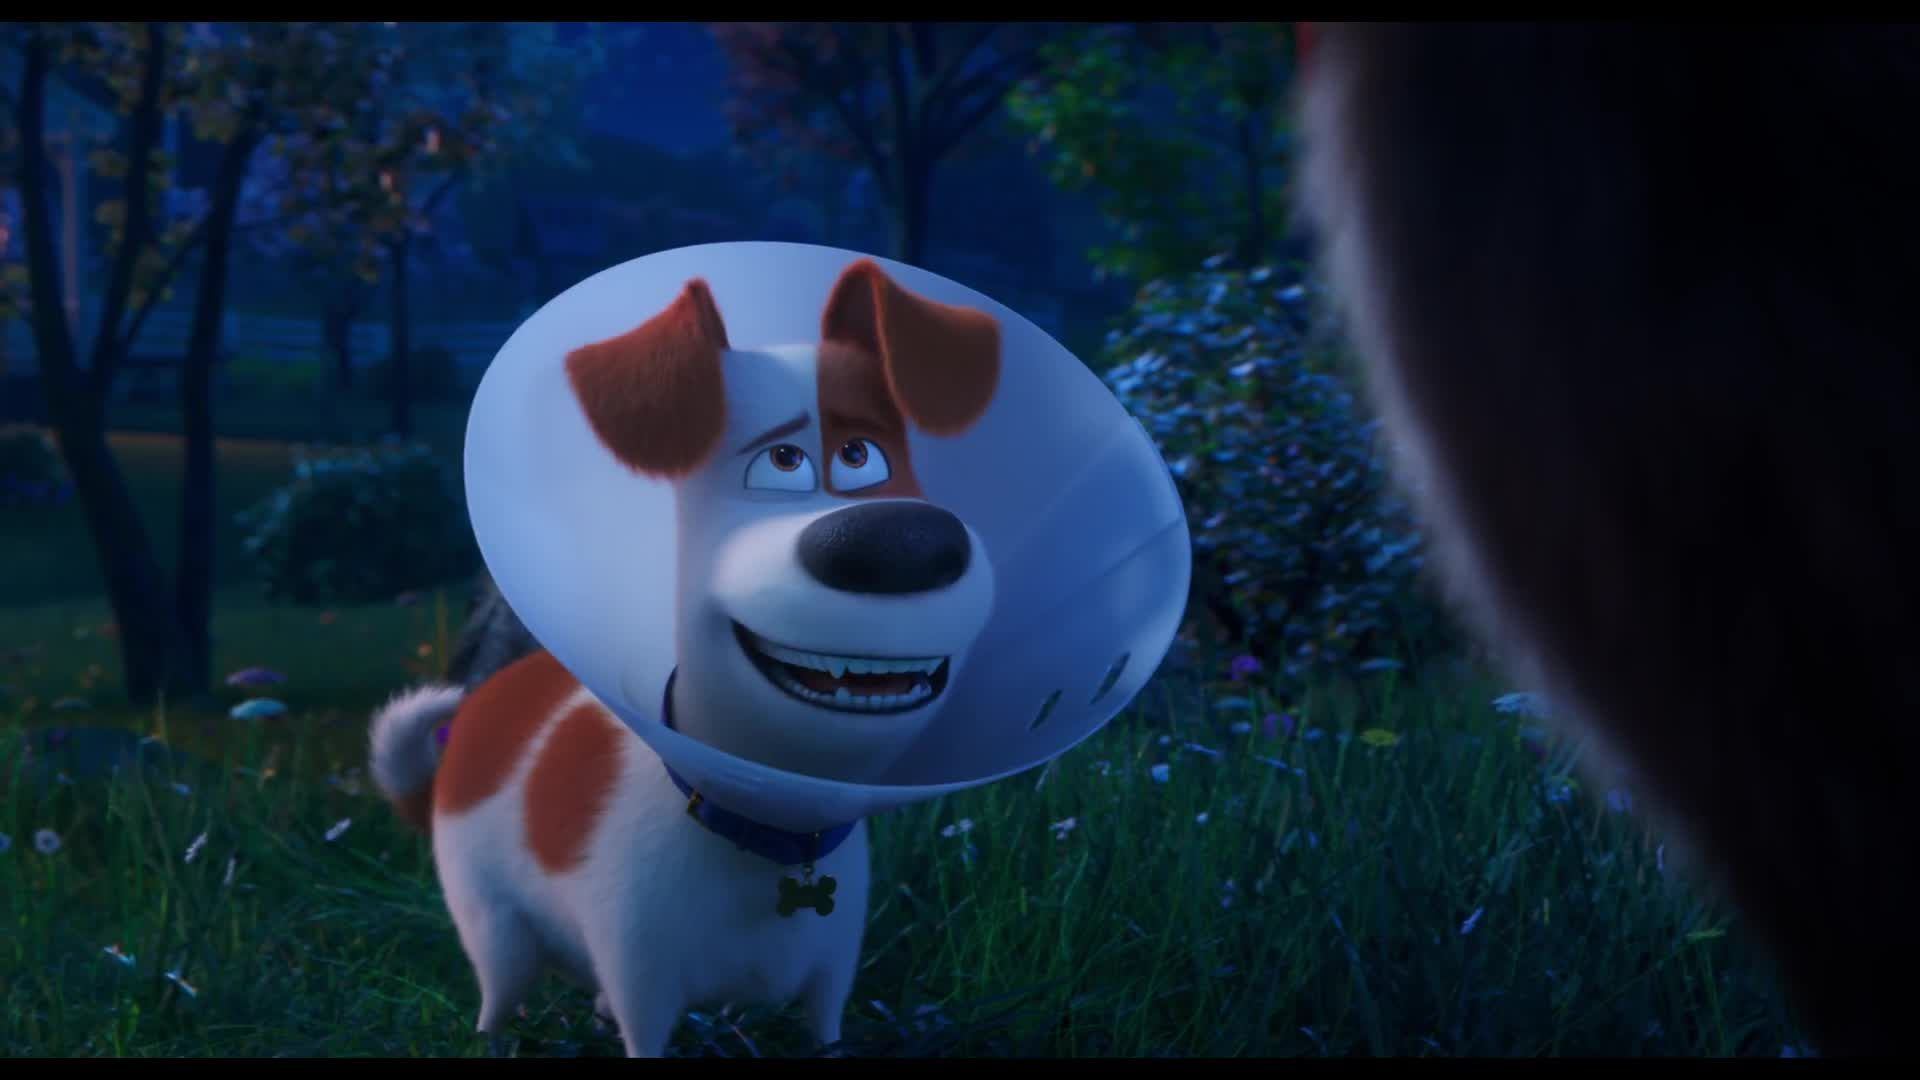 See The Final Trailer For The Secret Life Of Pets 2 In Theaters June 7 2019 Secret Life Of Pets Secret Life